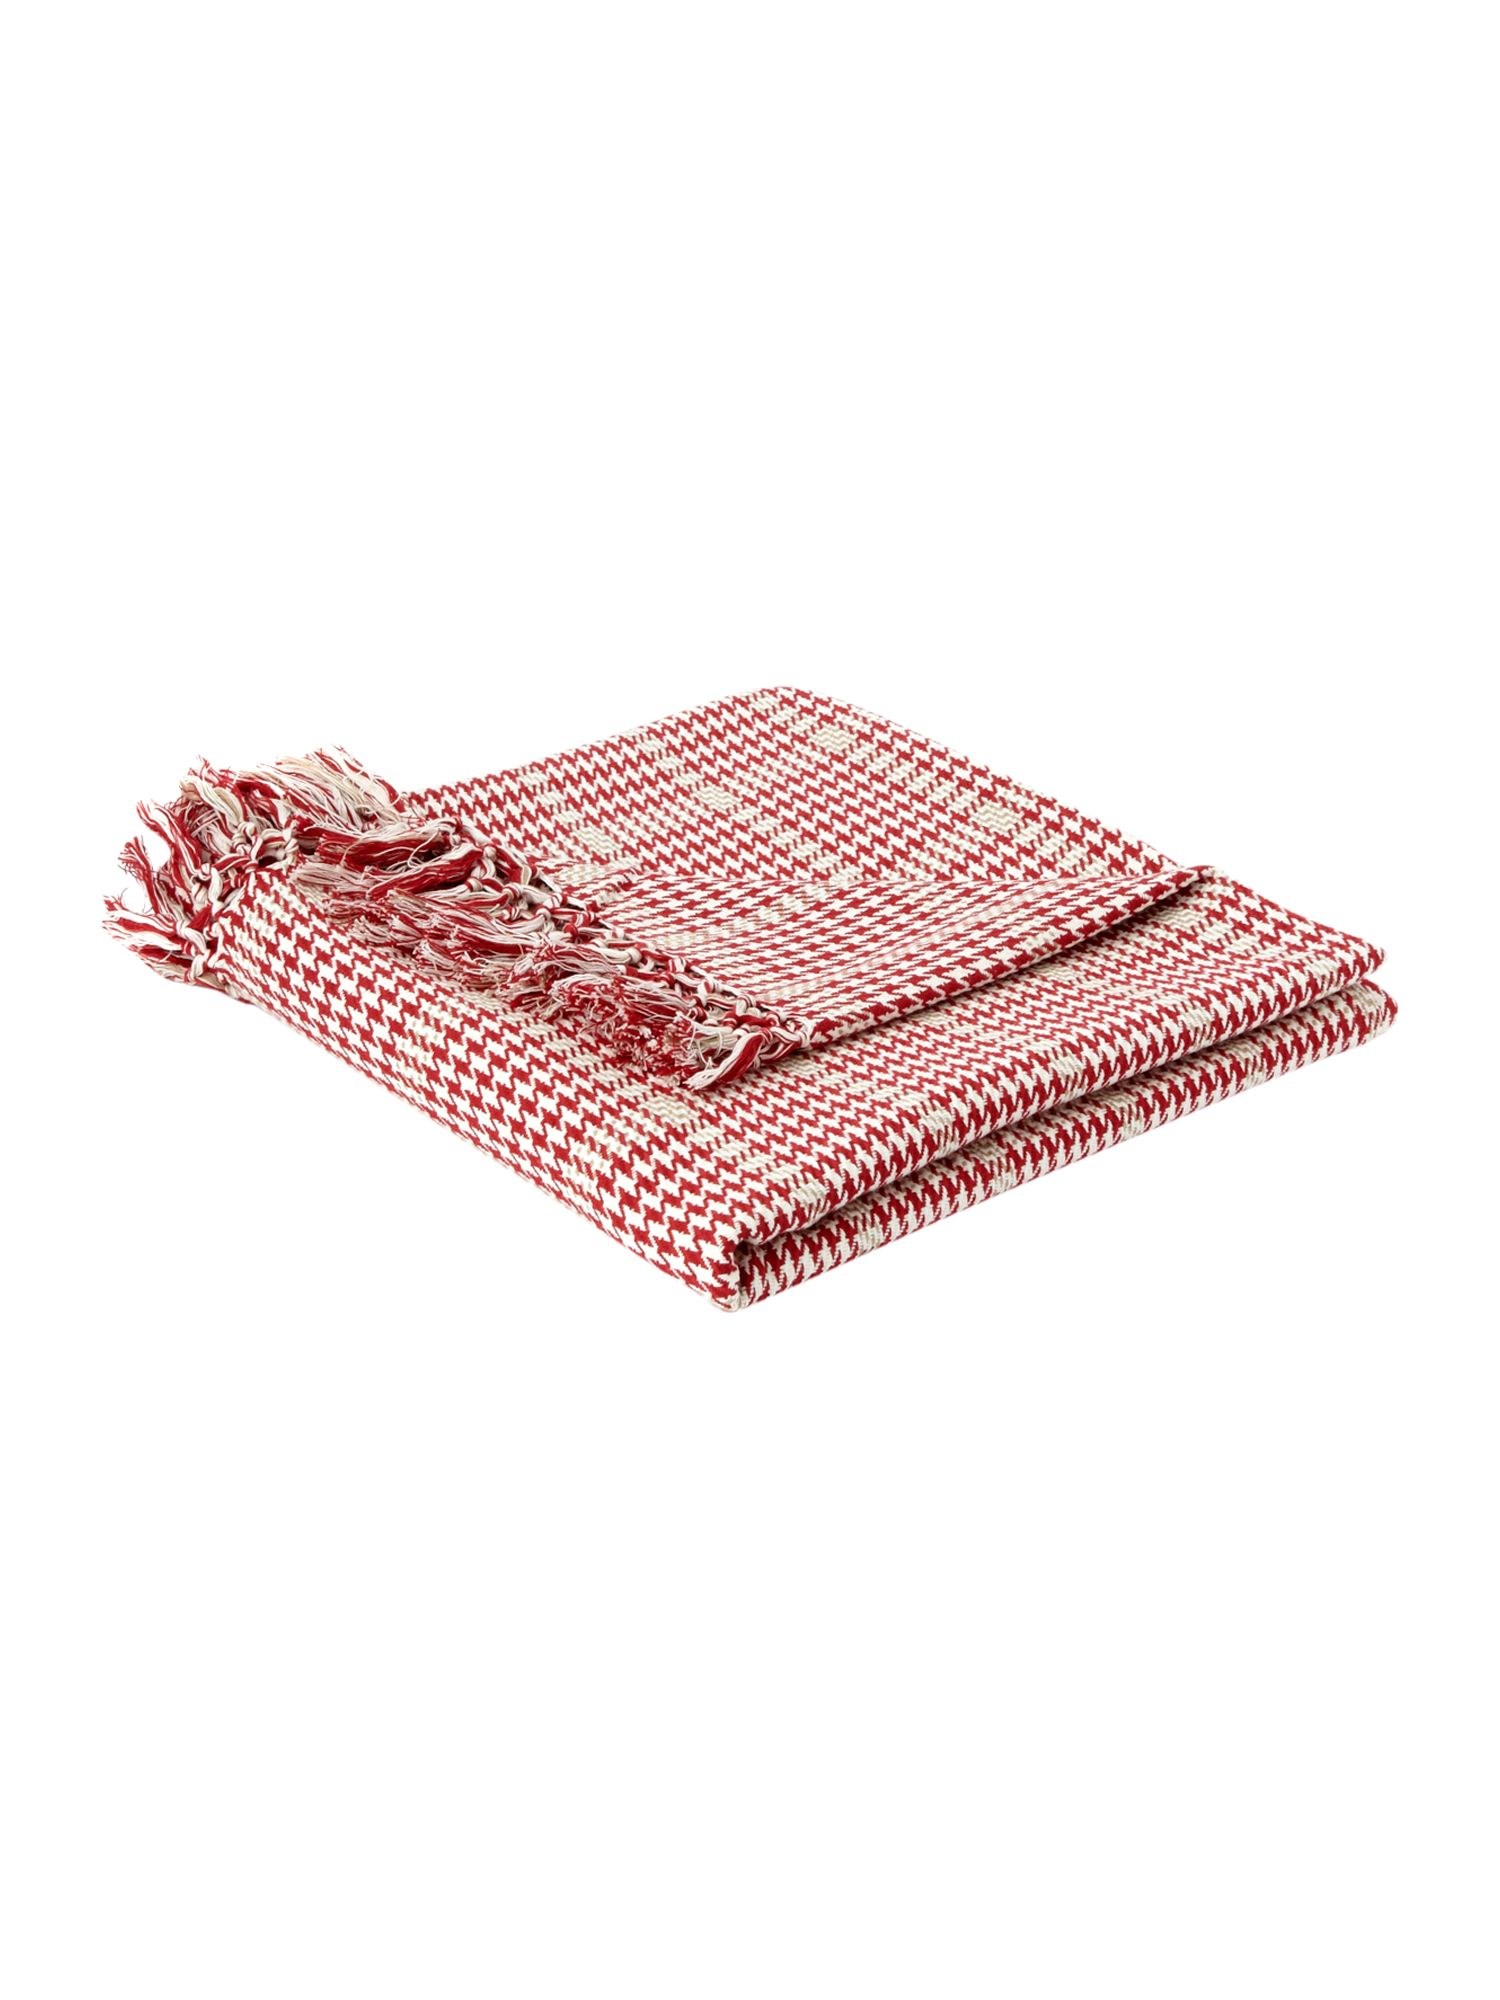 Cotton plaid throw red and cream